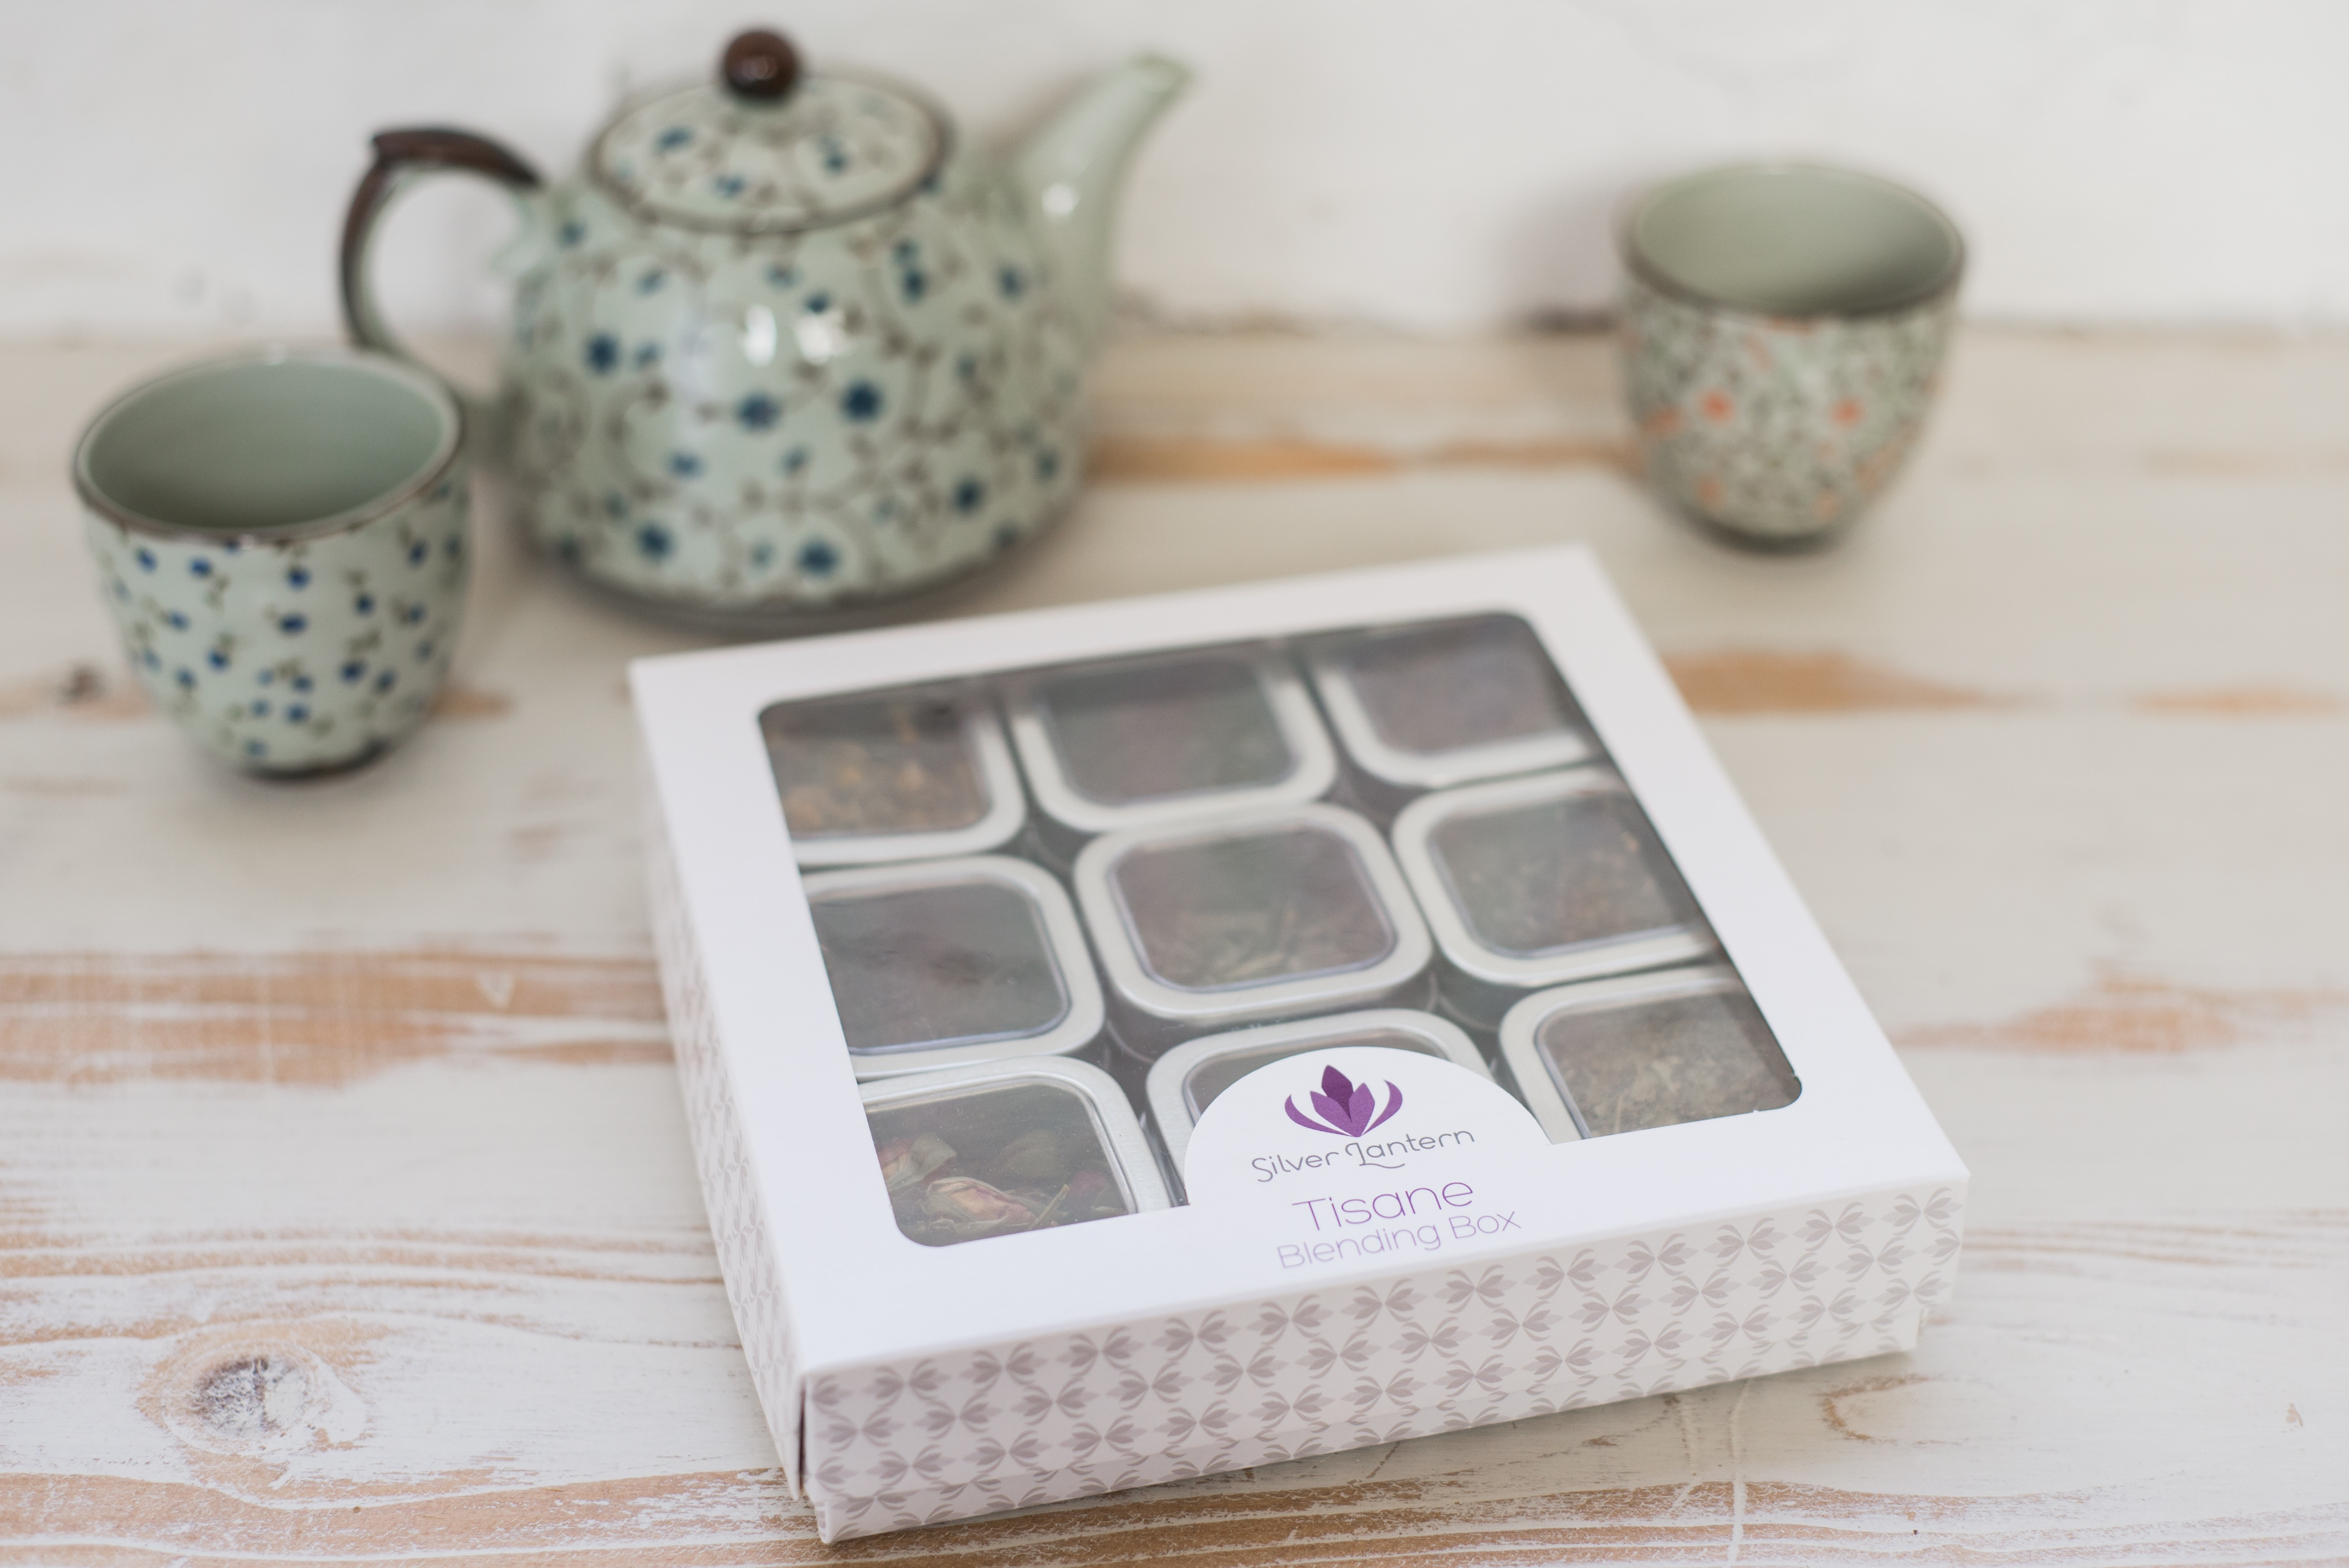 Tisane Blending Box